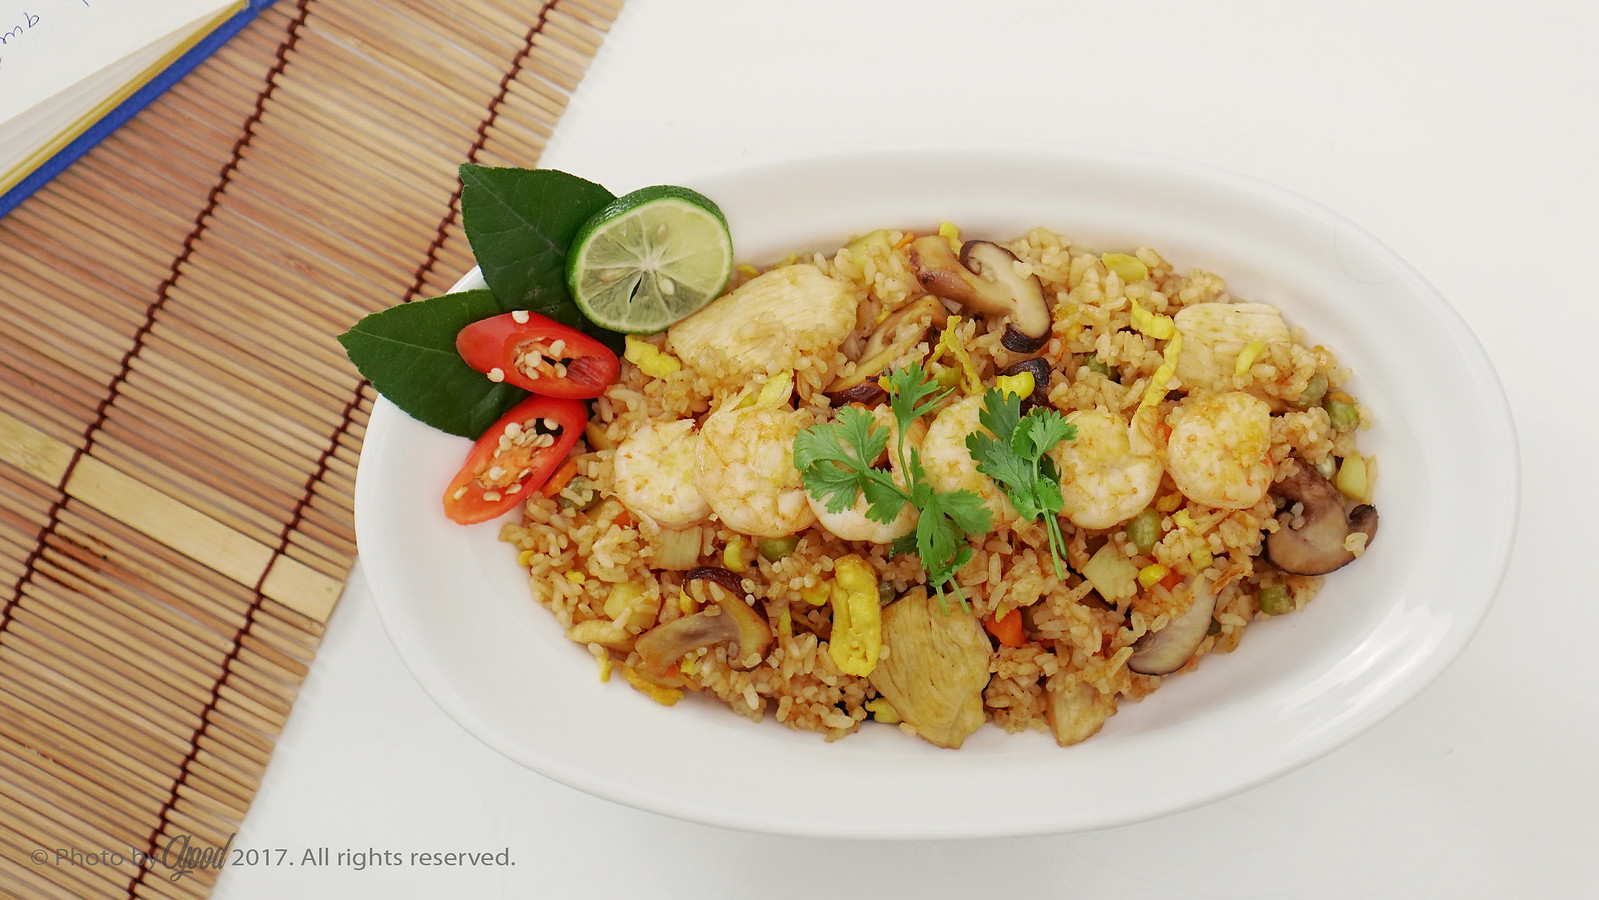 Homemade Tom Yam Fried Rice – Bring Thailand Flavor To Your Home